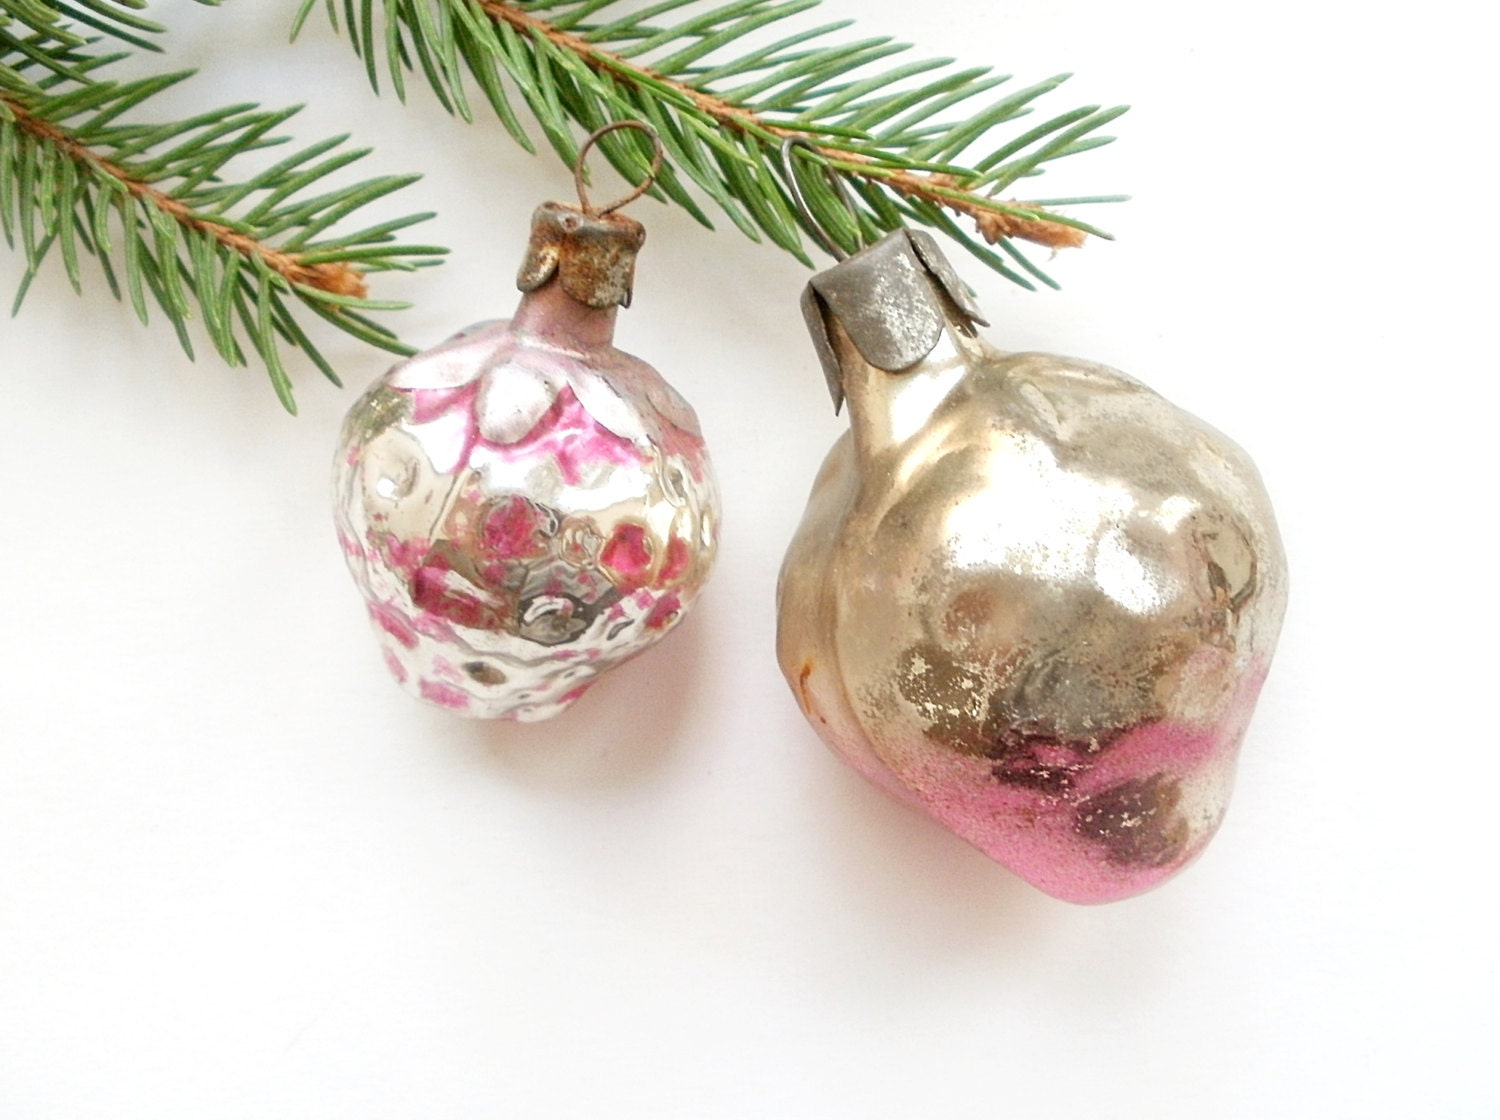 Antique Christmas Ornaments 1950s Christmas By Vintagepresents